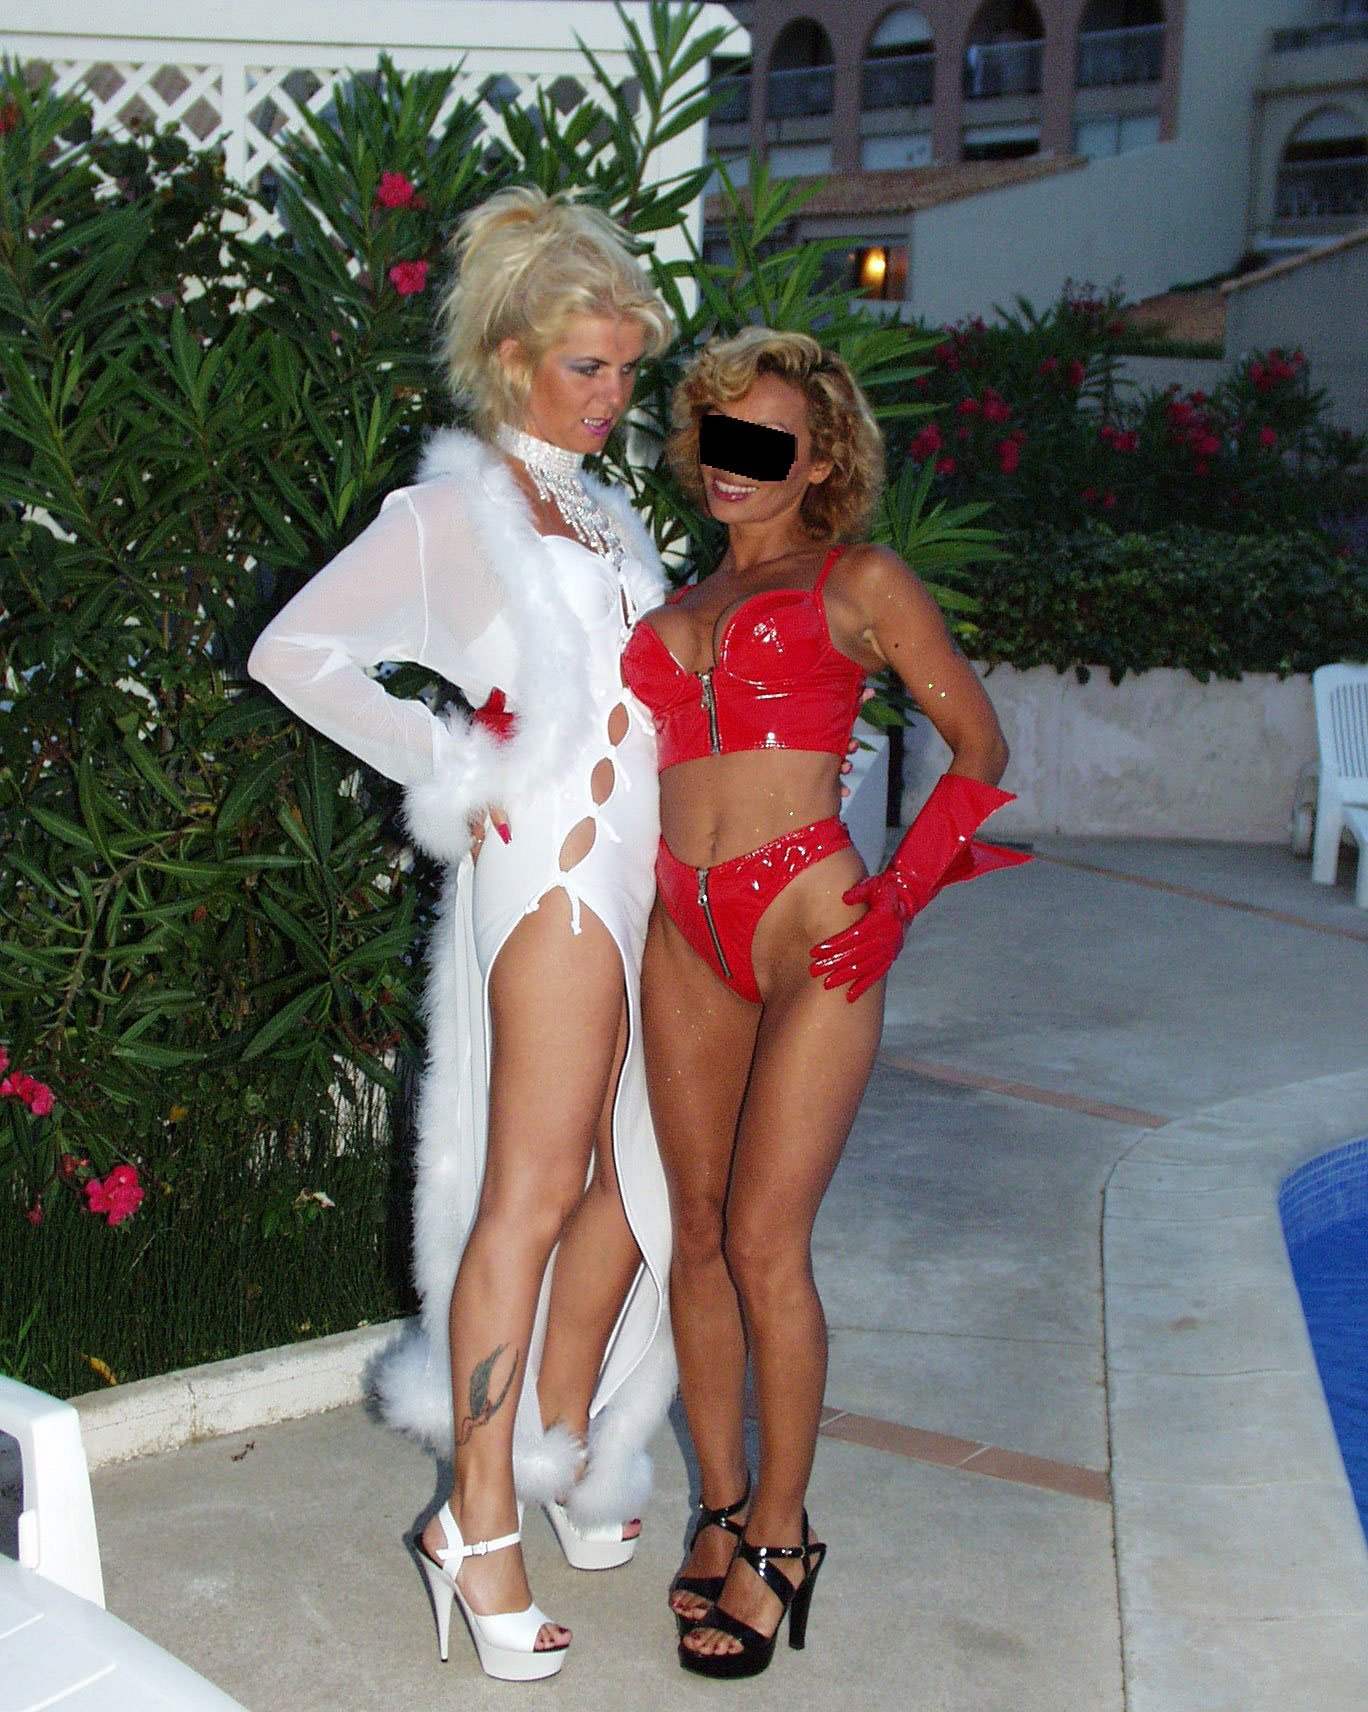 Miklos reccomend Amatuer naked wife shared